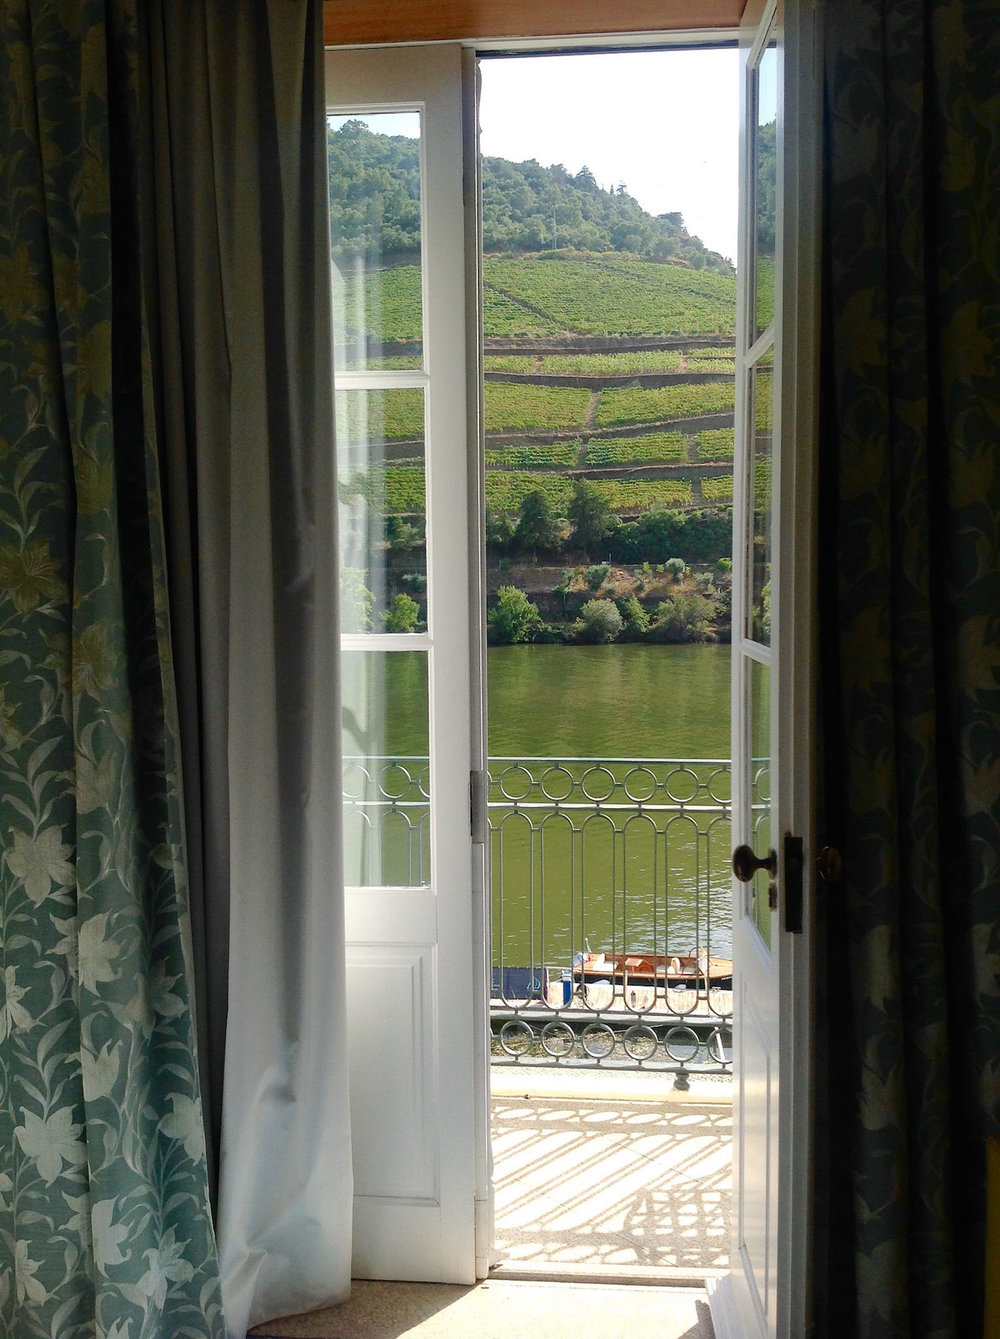 overlooking the douro river.